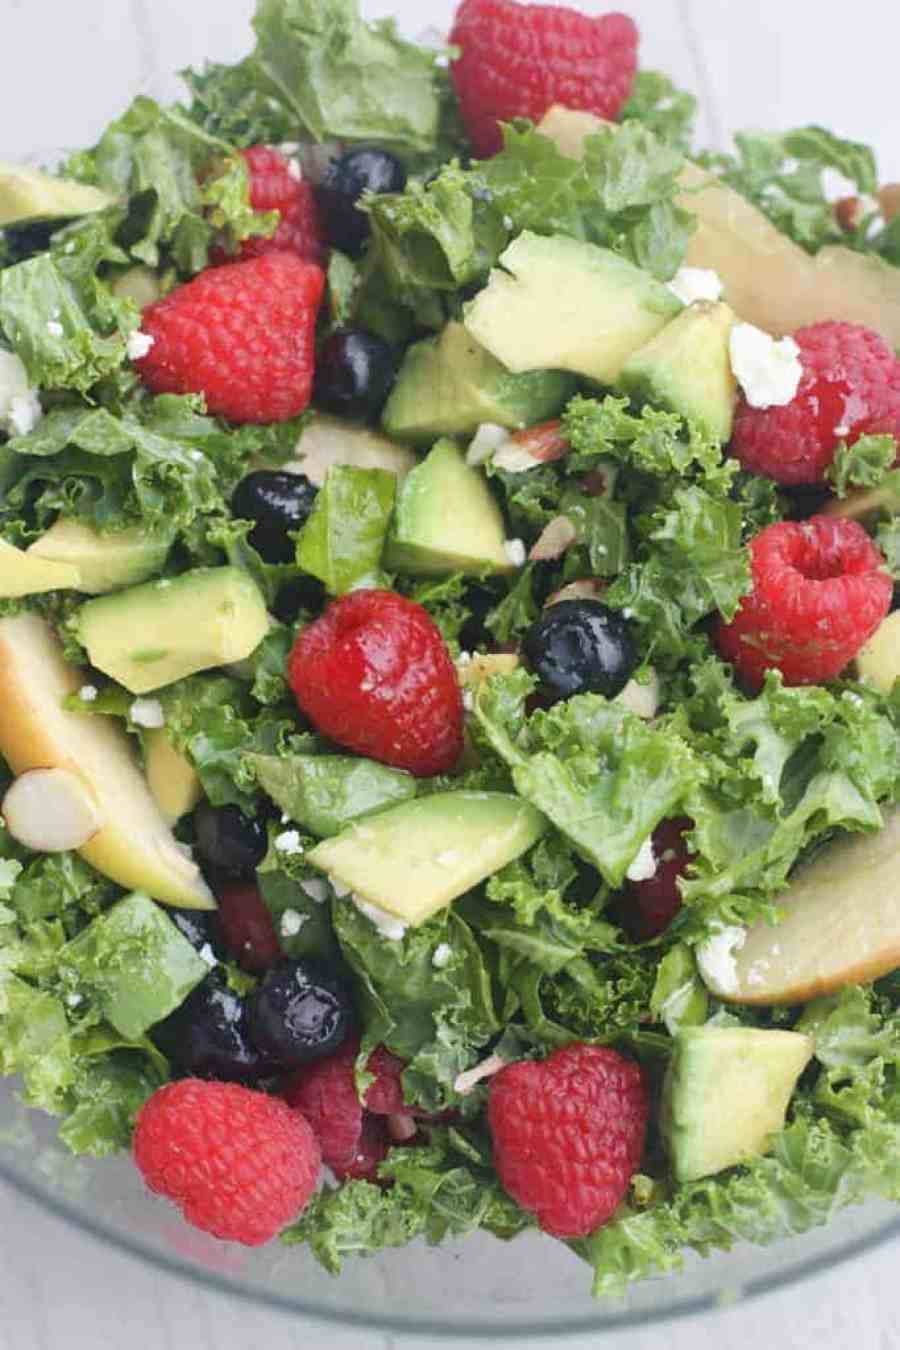 Berry Almond Avocado Salad with Poppyseed Dressing | Tastes Better From Scratch